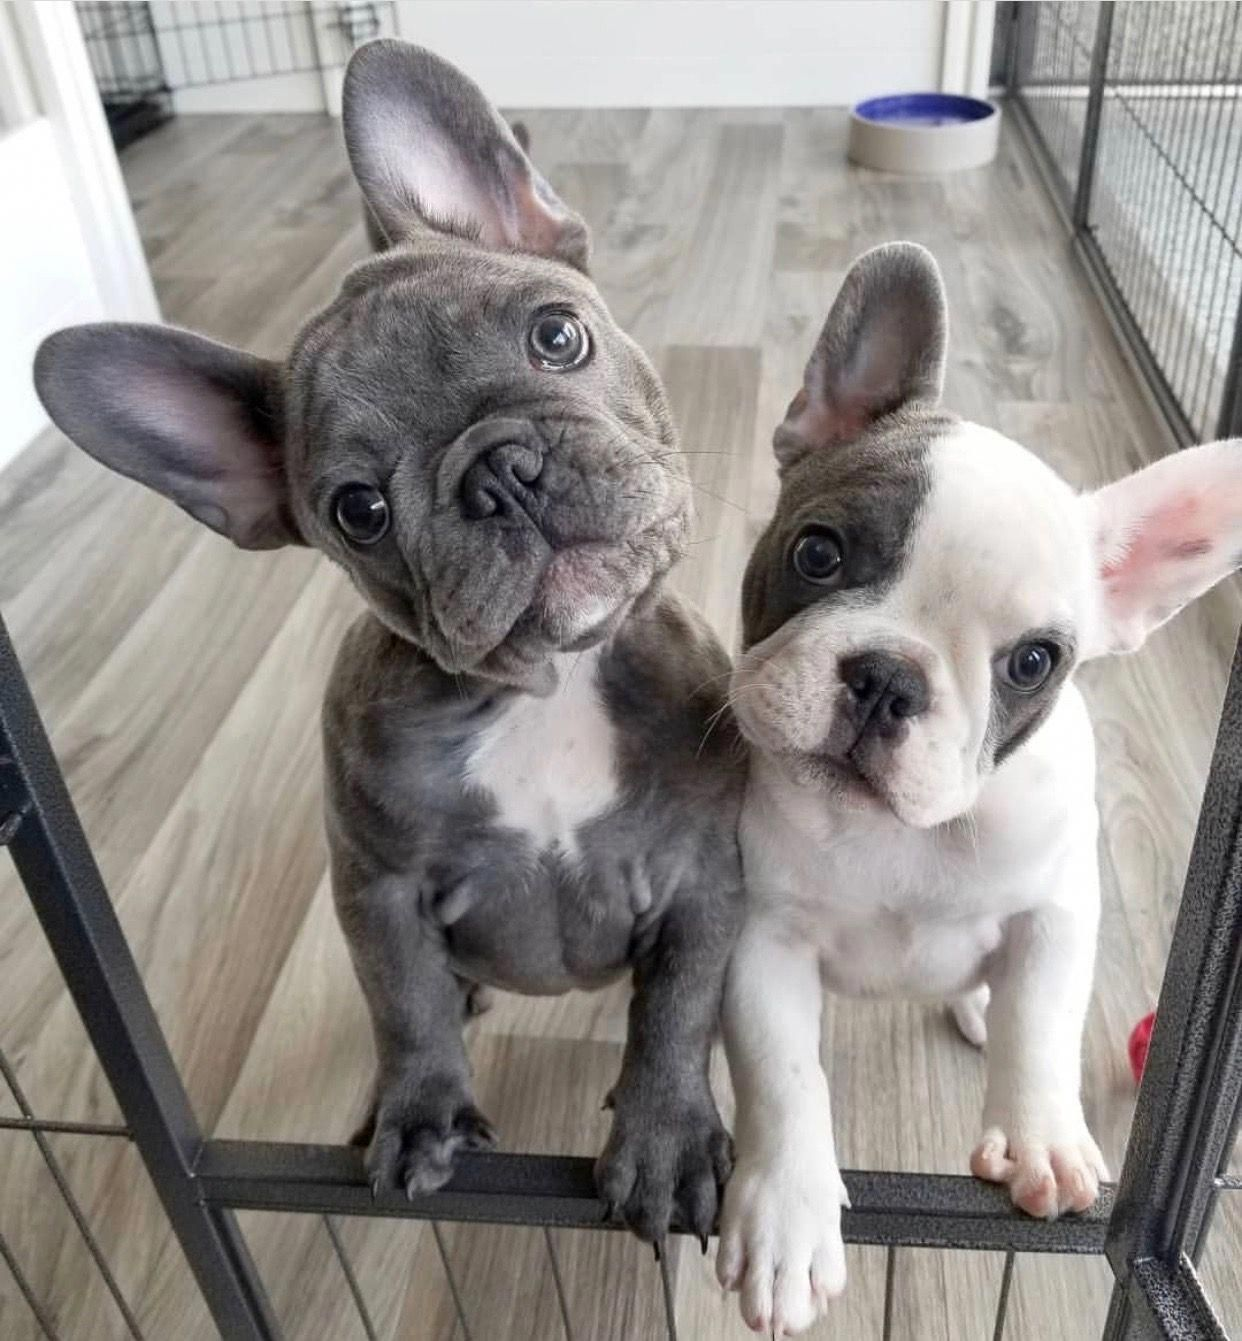 The traits I respect about the Alert Frenchie